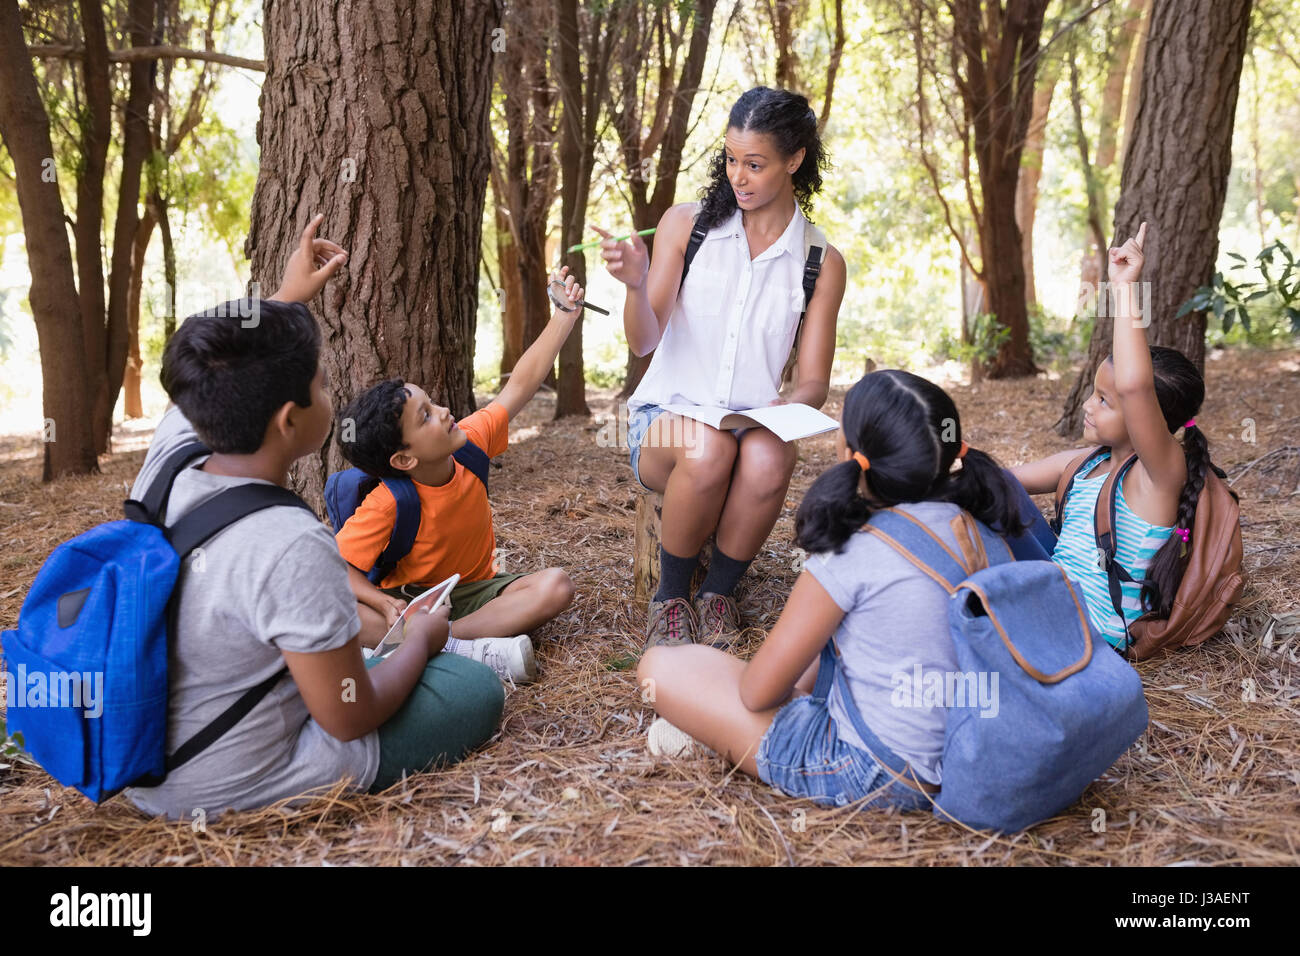 Teacher explaning students sitting in forest during summer field trip Stock Photo